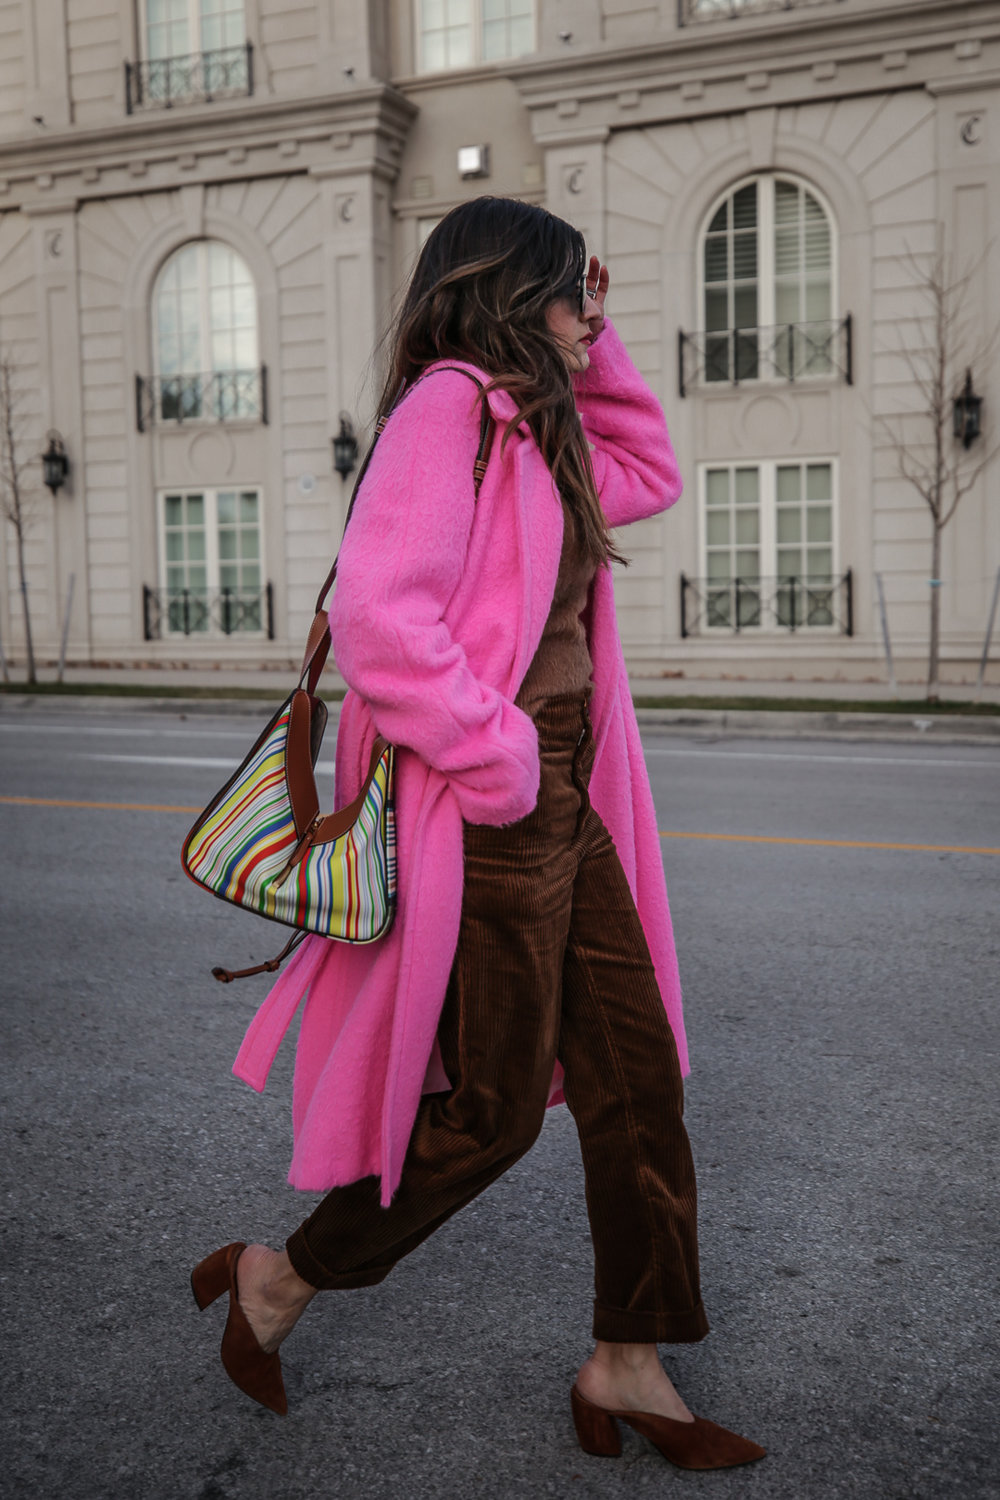 Nathalie Martin wearing Helmut Lang pink belt tie wool coat, brown corduroy pants, Zara brown textured sweater, Prada brown suede mules, Loewe striped Hammock bag, Bonlook Class sunglasses, street style, woahstyle.com_5195.jpg